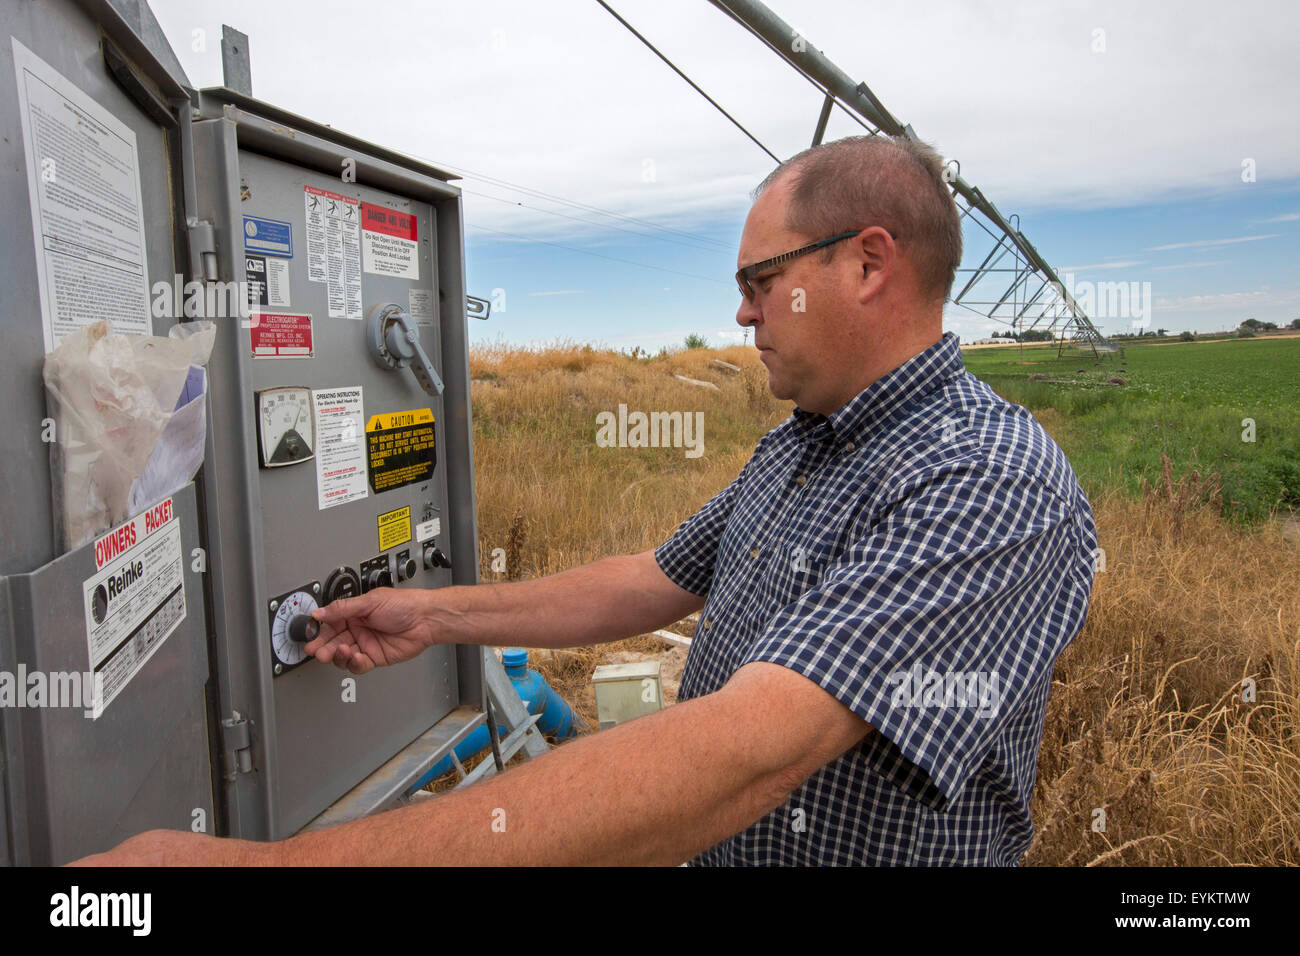 Shelley, Idaho - Idaho potato farmer Bryan Searle adjusts the controls for a center-pivot irrigation system on his - Stock Image